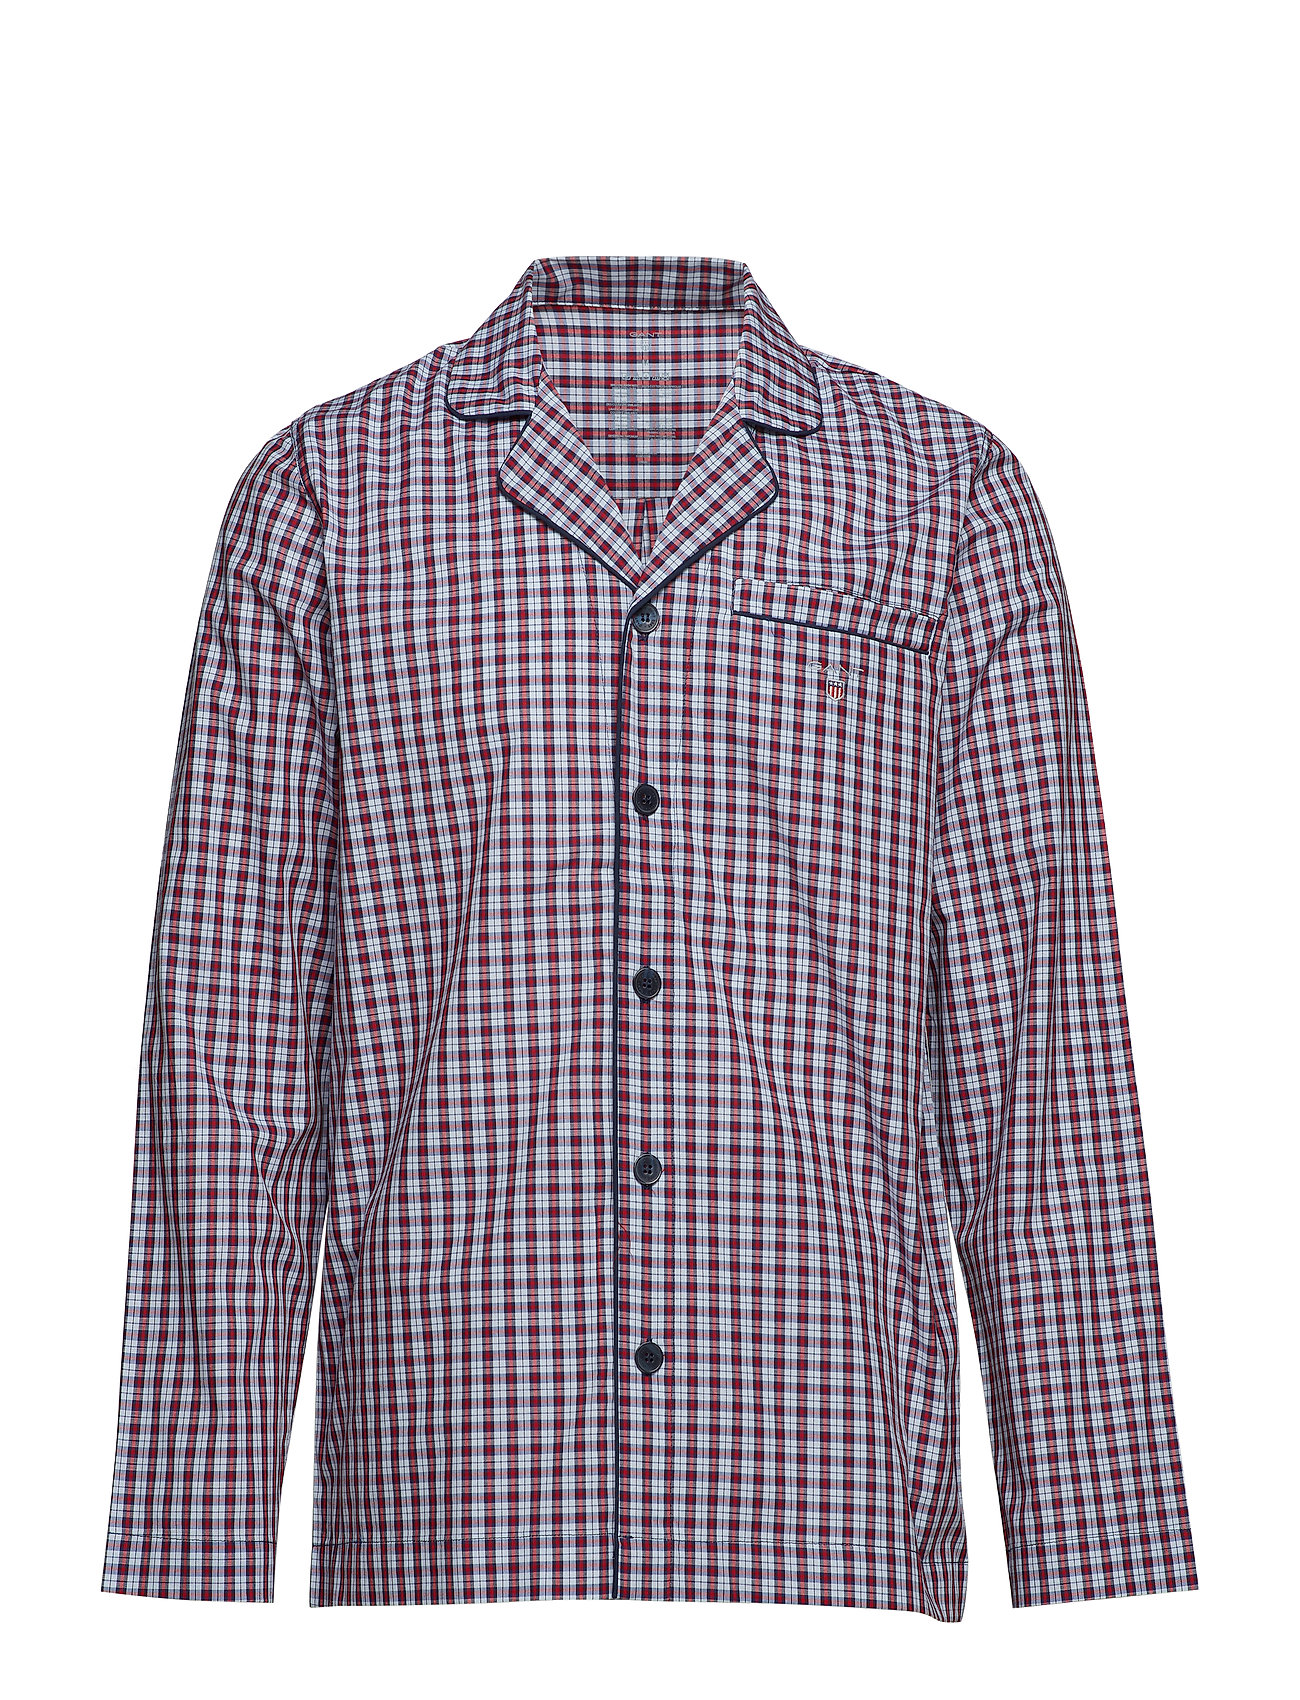 GANT PJ SET SHIRT POPLIN SMALL CH G.BOX - HAMPTONS BLUE